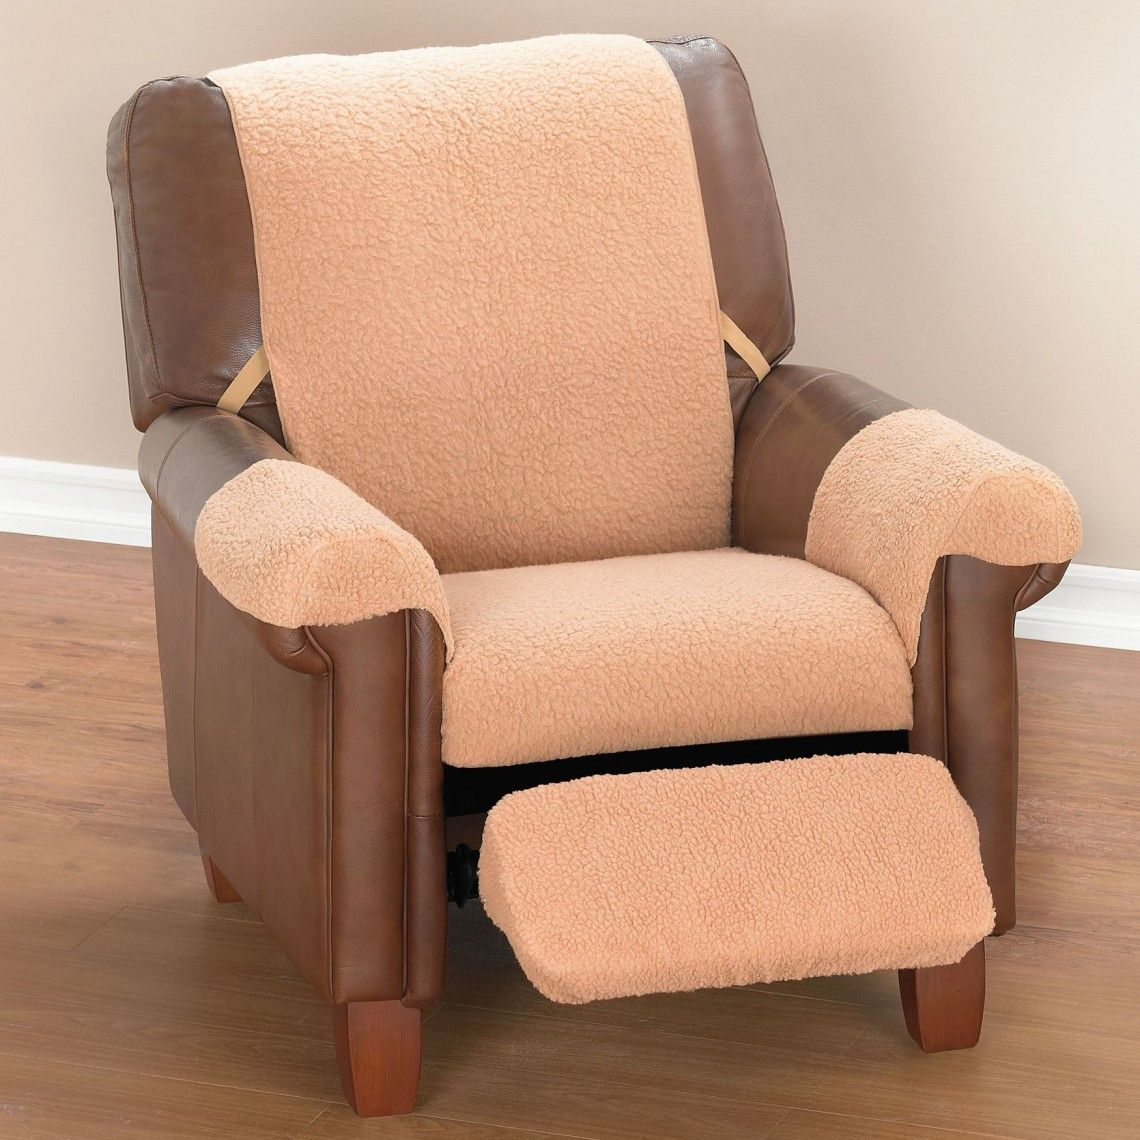 Delightful Stylish Recliner Chair Covers For Nursery Room Design Lazyboy Recliner  Oversized Rocker Recliner Stylish Recliners Lazy